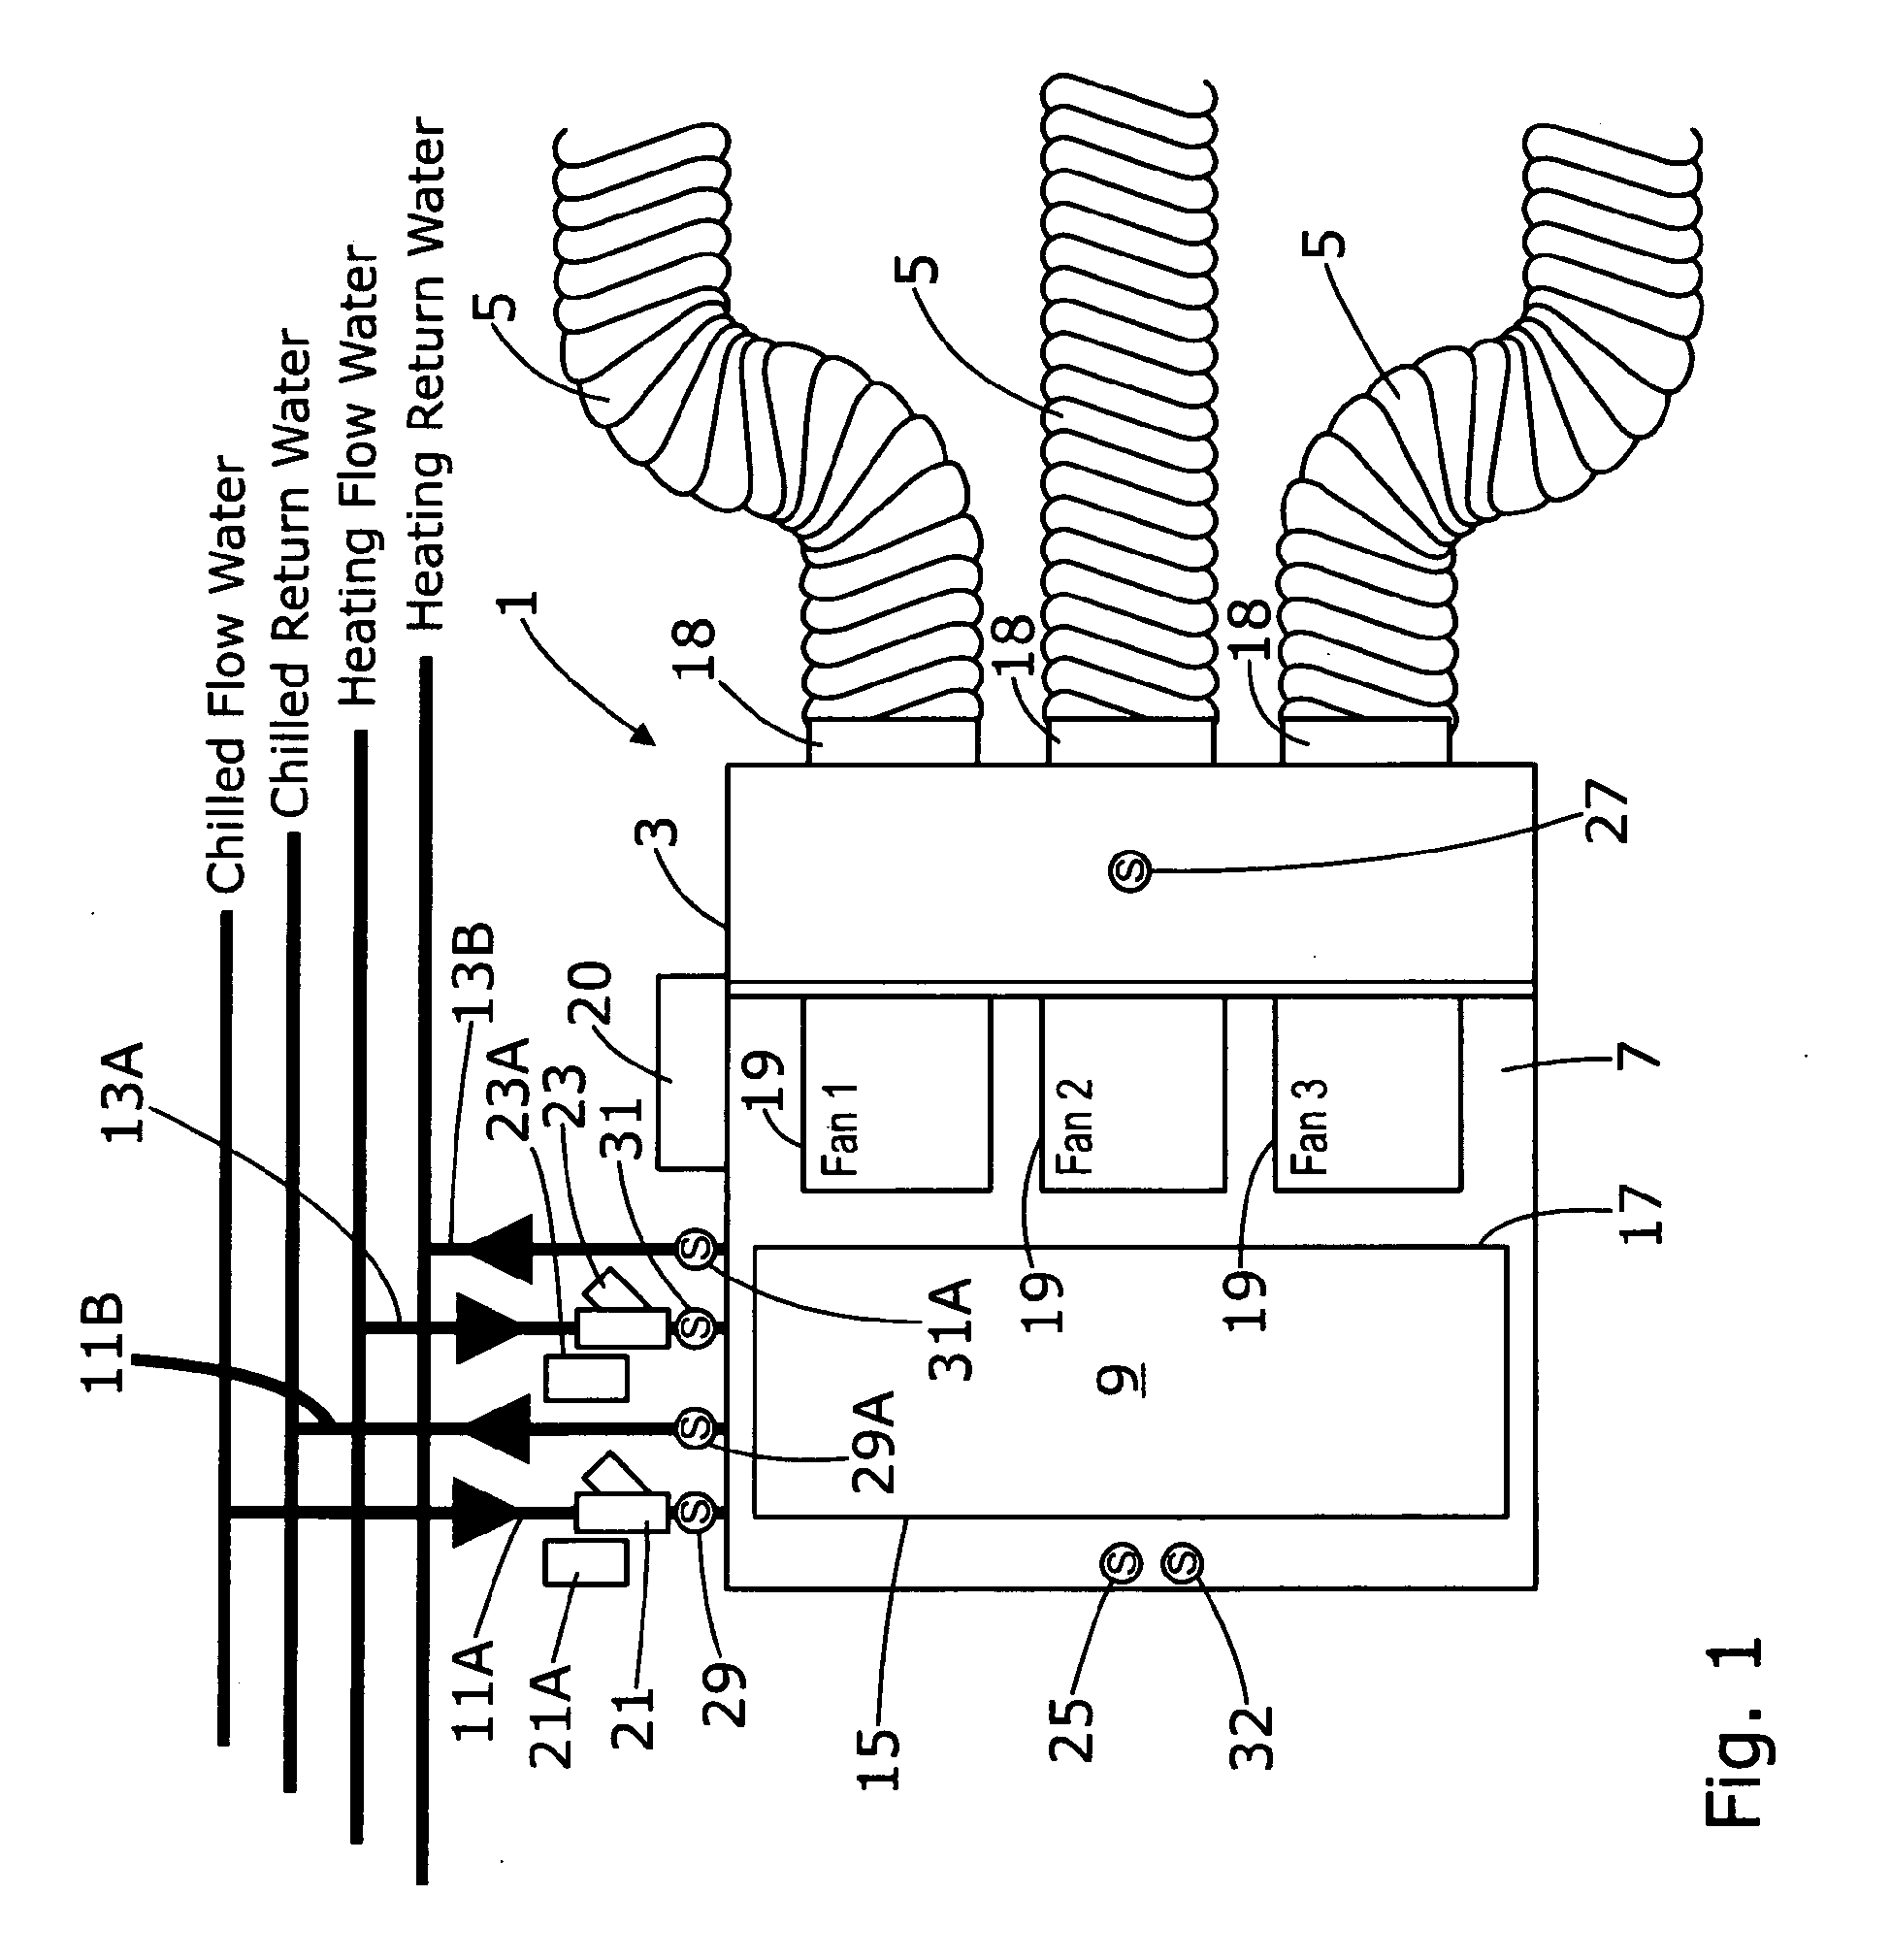 fan coil unit wiring diagram fetal pig internal anatomy patent ep2481996a1 a air conditioning system